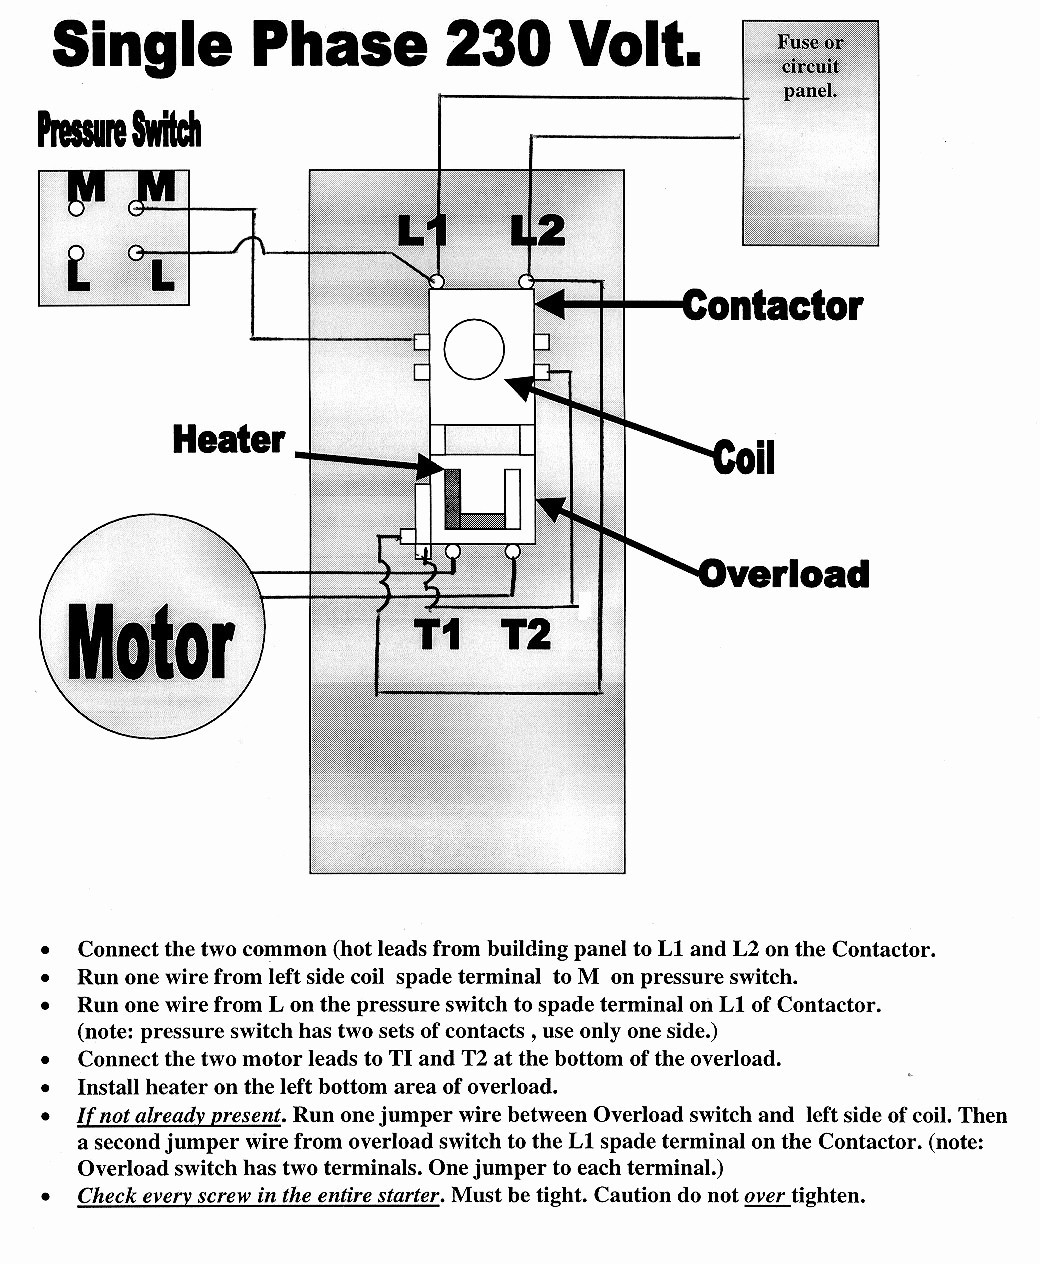 square d motor starter wiring diagram Download-square d manual motor starter wiring diagram chromatex rh chromatex me Square D Pressure Switch Wiring 16-e